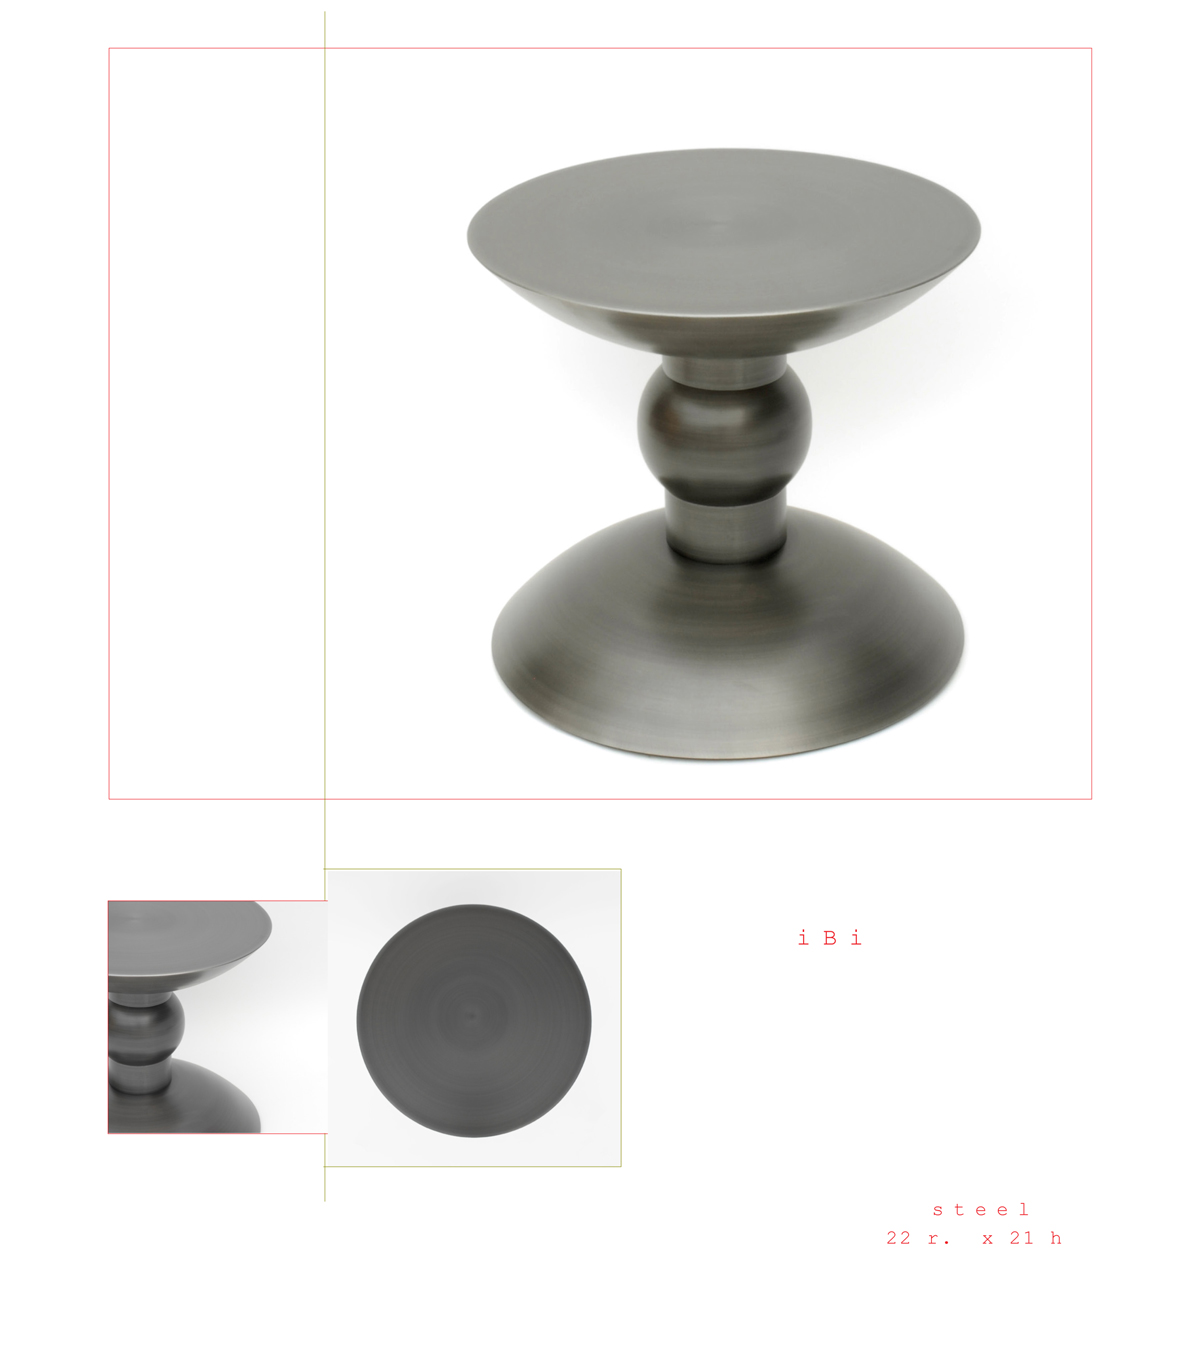 Ibi is a contemporary end table made out of steel measuring 22 x 21 inches hi made by Chad Manley Design.